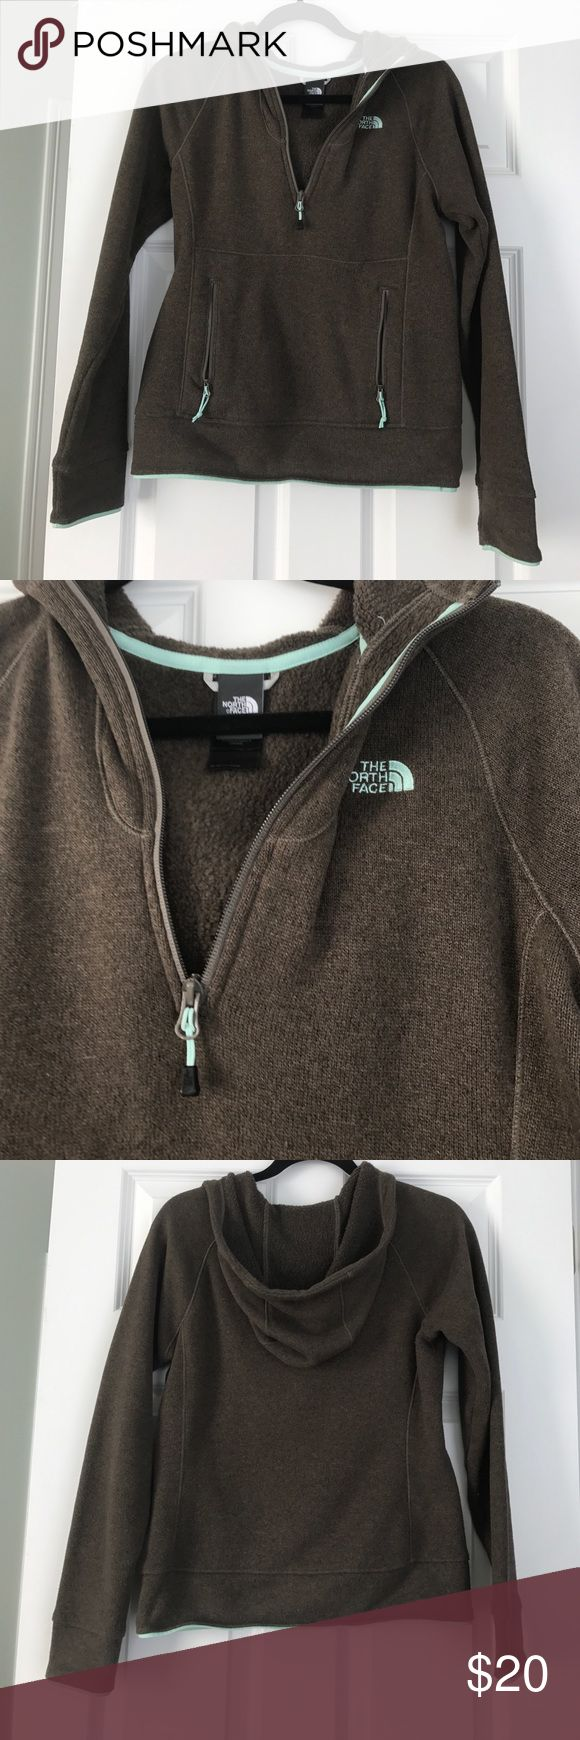 EUC north face jacket Good condition north face pullover hoodie jacket, size small. Brown with mint detailing, half zip with zippered pocket on front. Super comfy and warm, great for layering. North Face Jackets & Coats